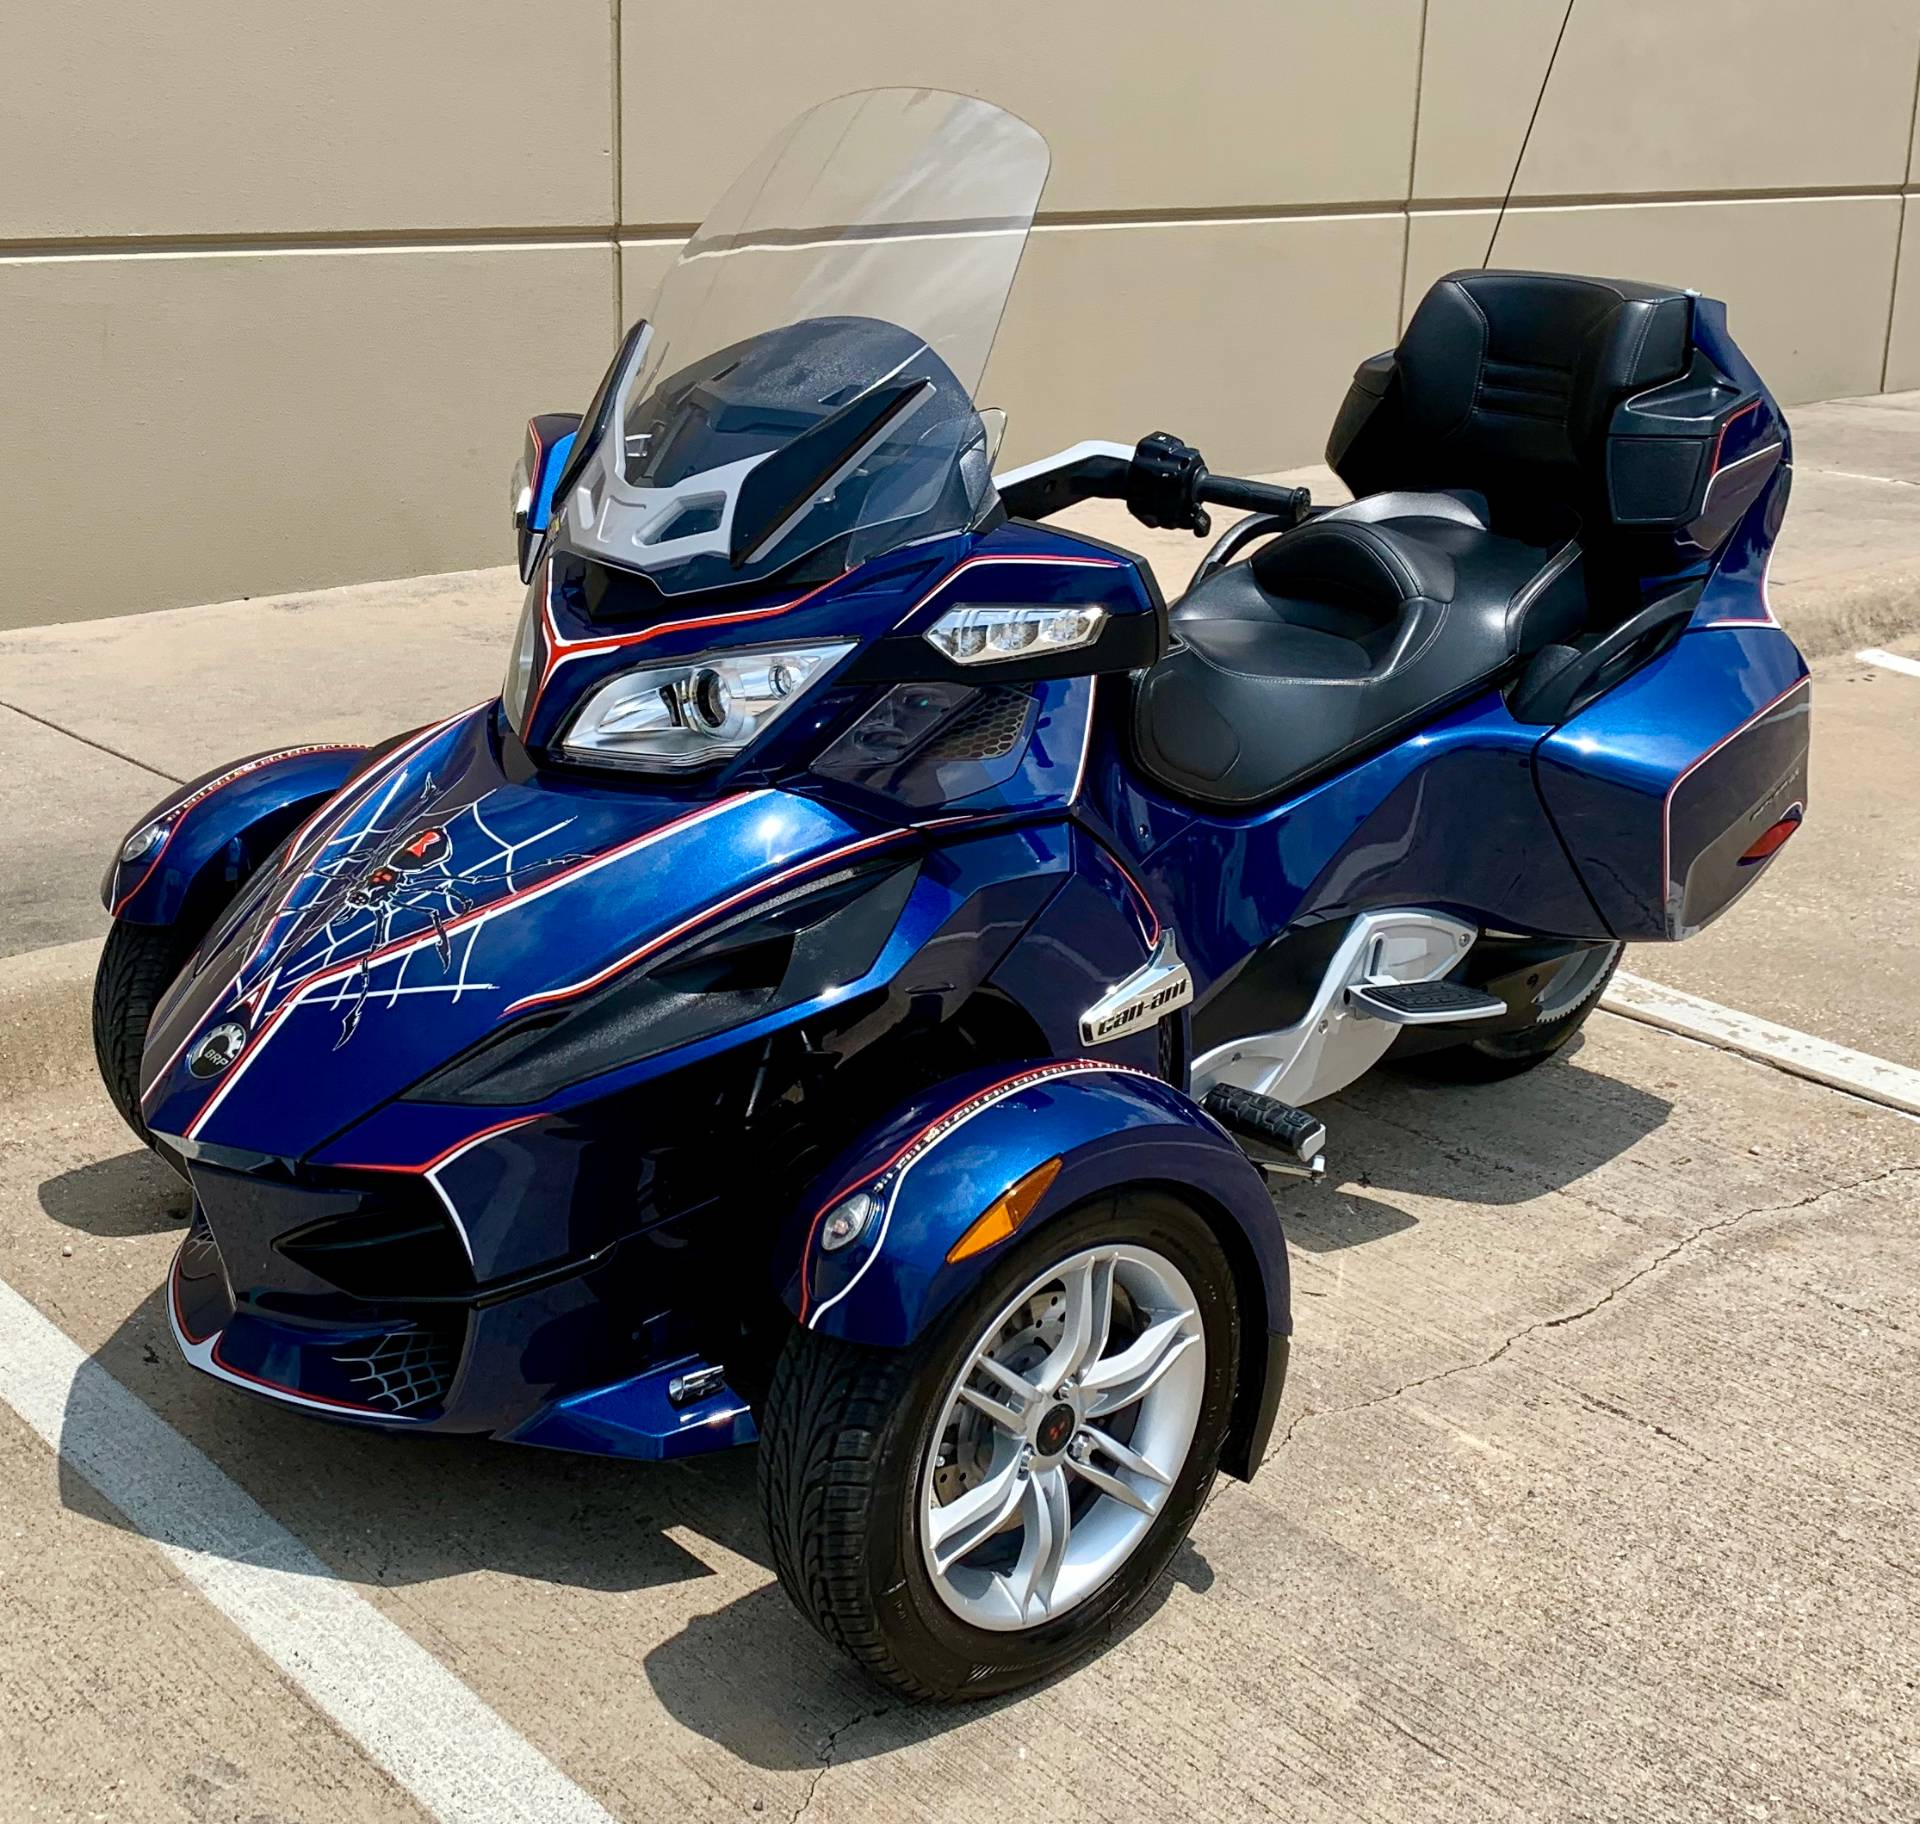 2010 Can-Am Spyder® RT Audio & Convenience SE5 in Plano, Texas - Photo 8